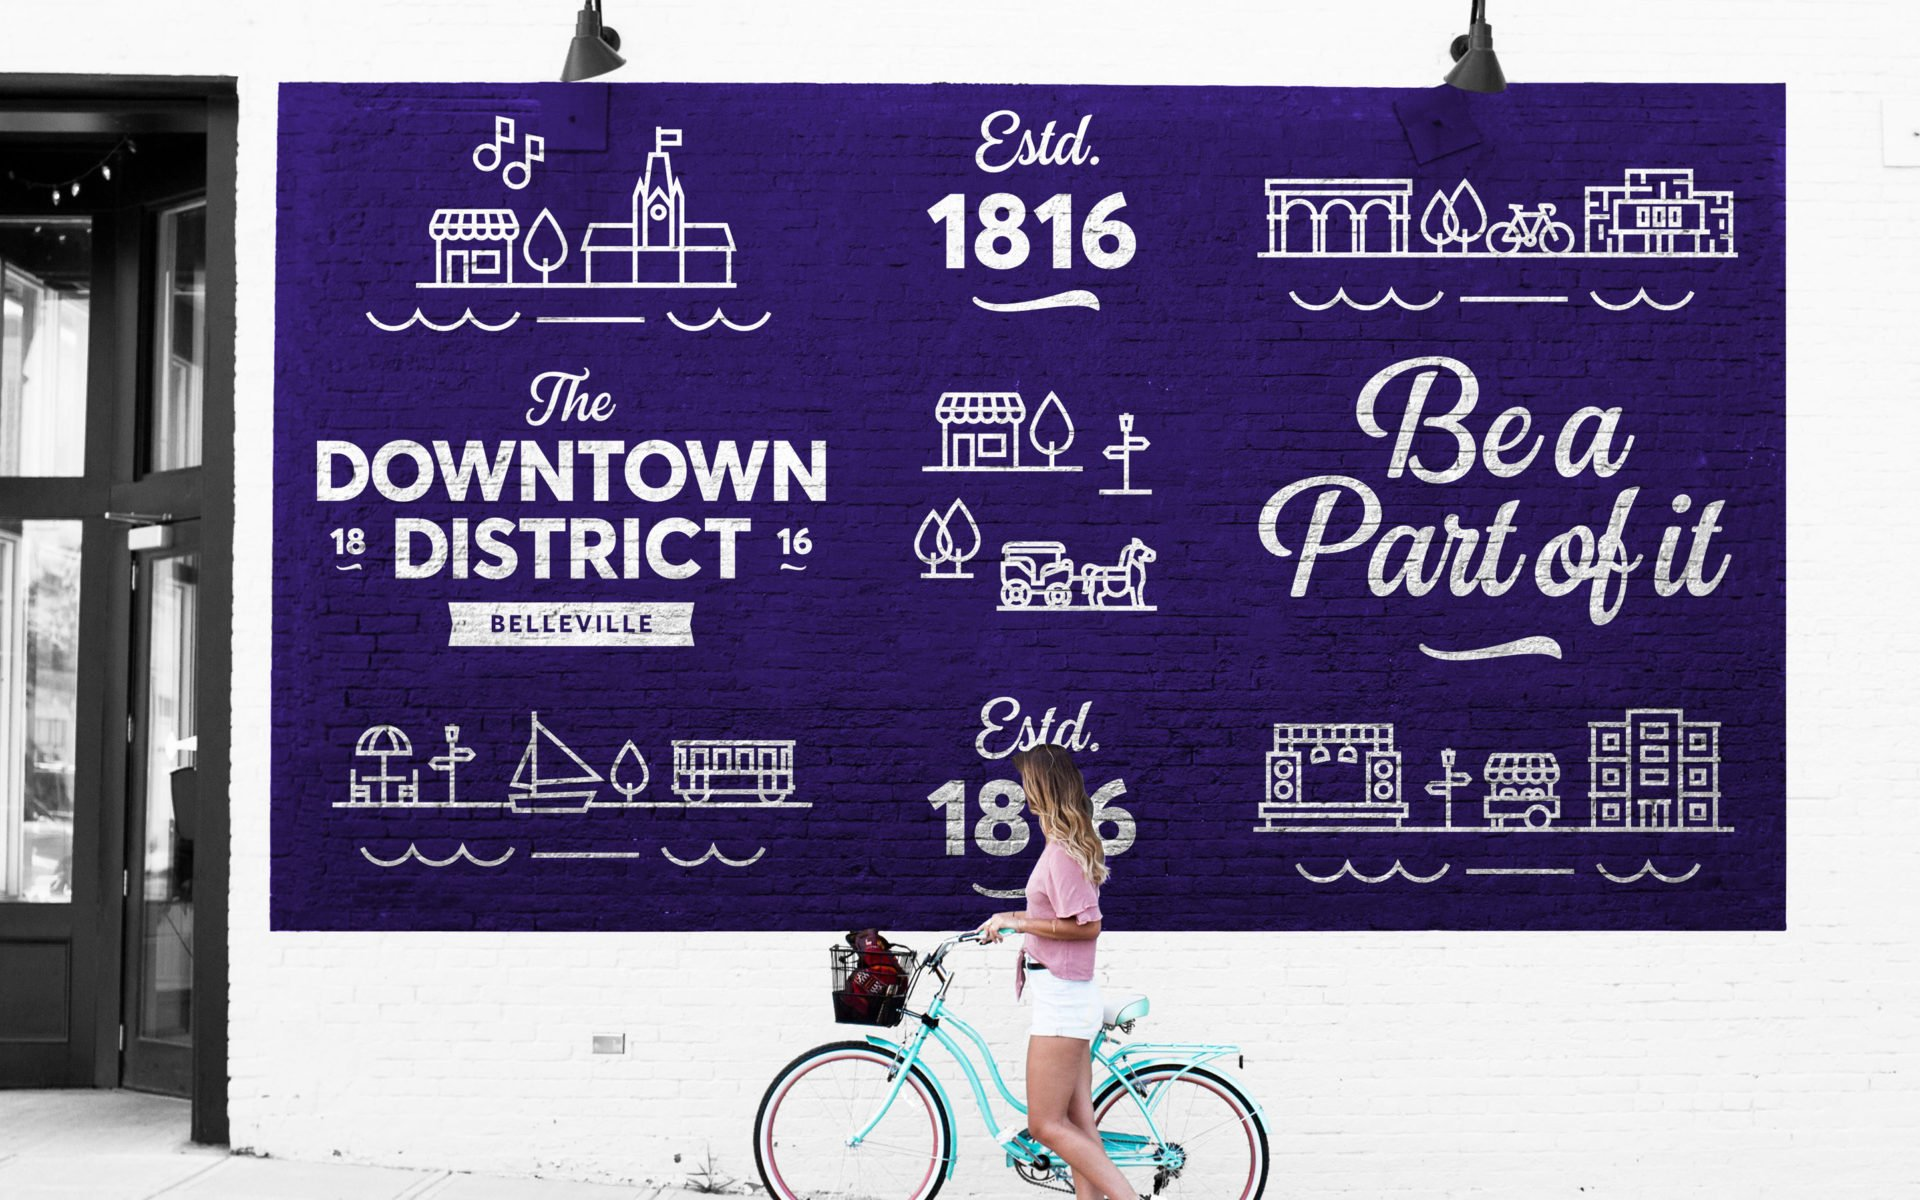 Discover The District